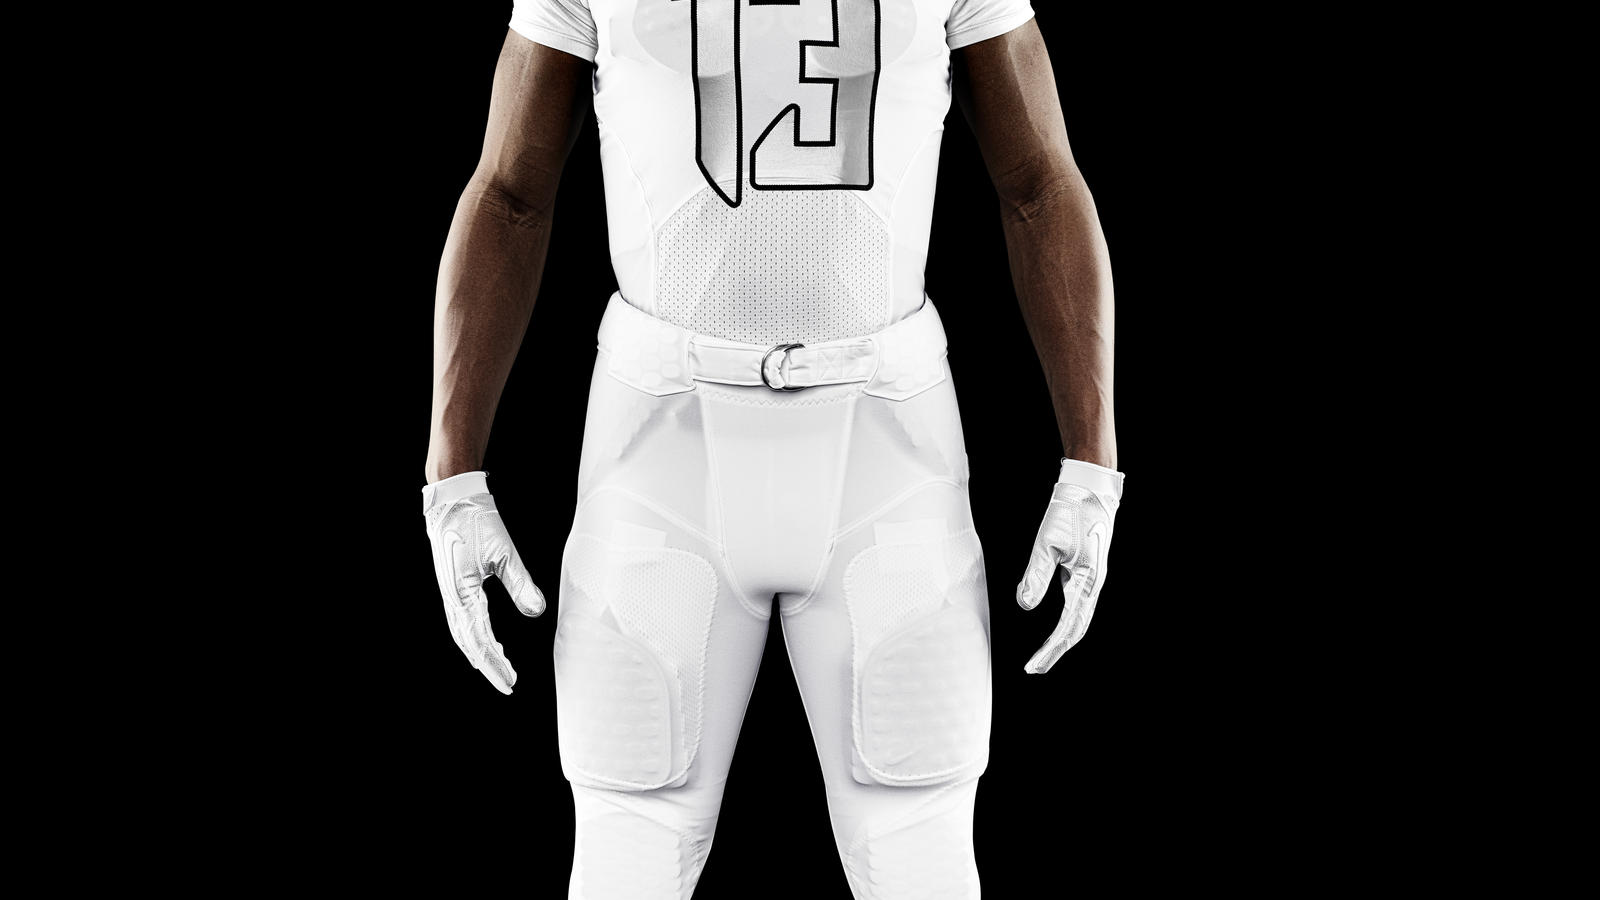 nike-football-uniform-uofo-home-front